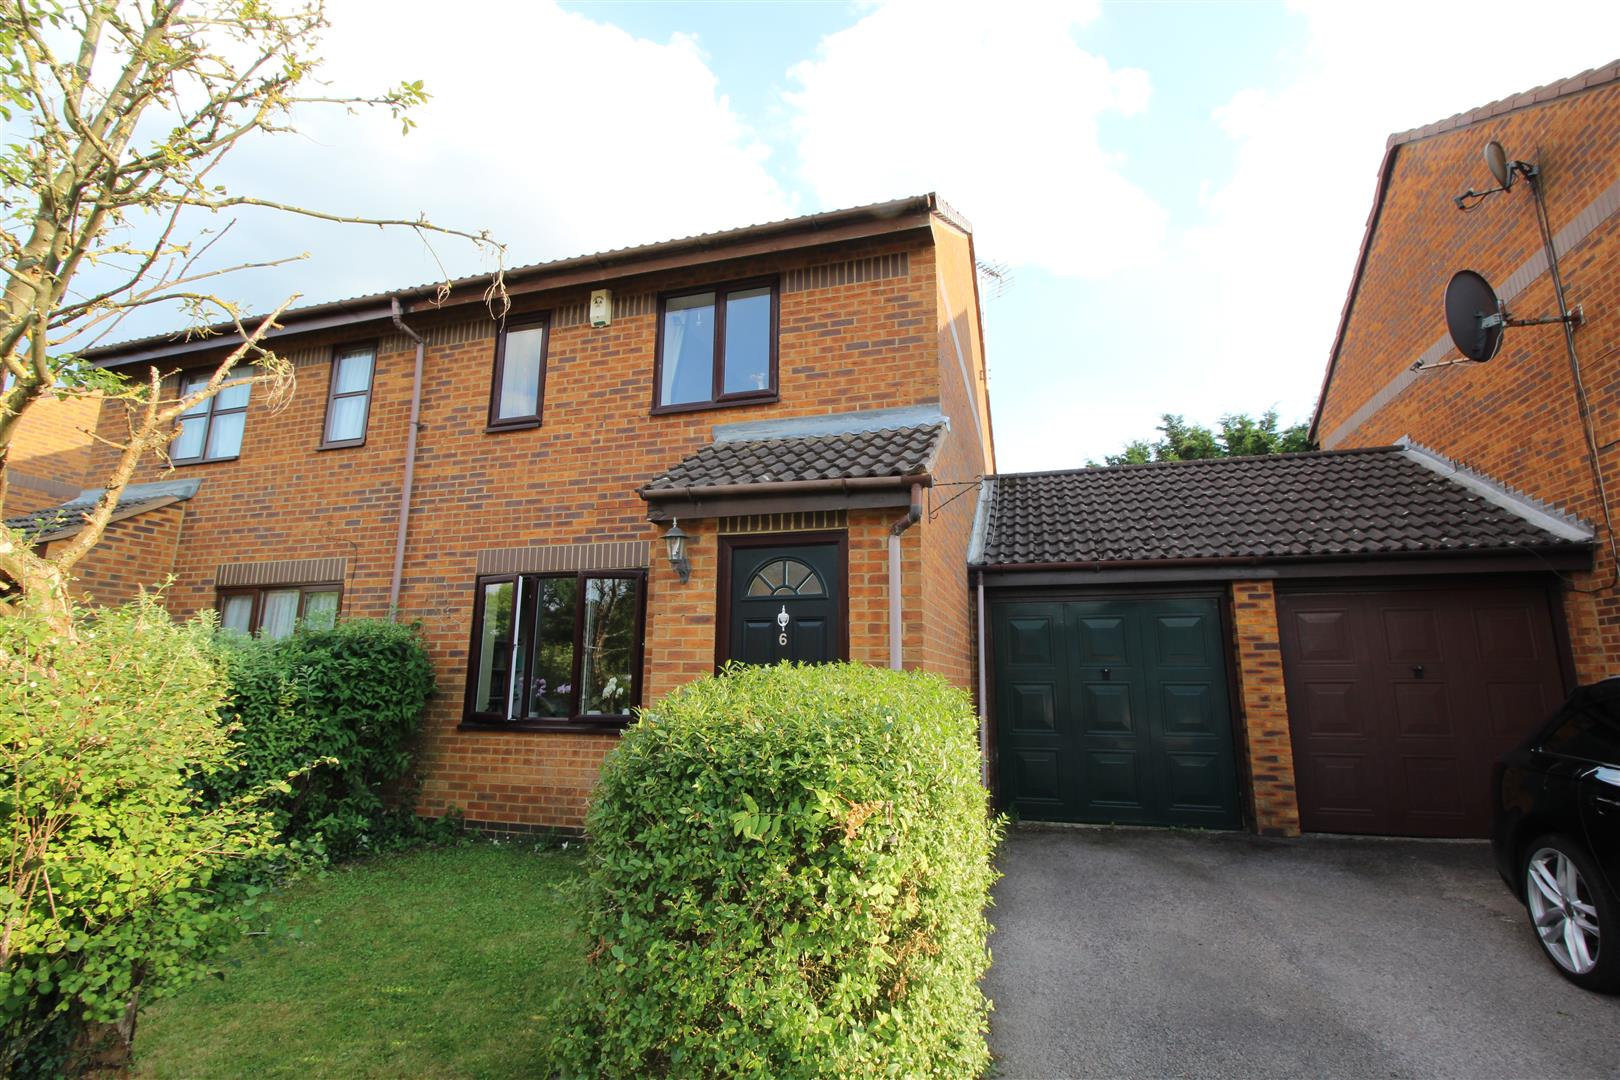 WALKING DISTANCE OF MAIN LINE RAILWAY STATION<br/><br/>At Stratfords we are pleased to present this 3 bedroom semi-detached property in the well loved area of Fenny Stratford. The property is located within walking distance of the main line railway stati